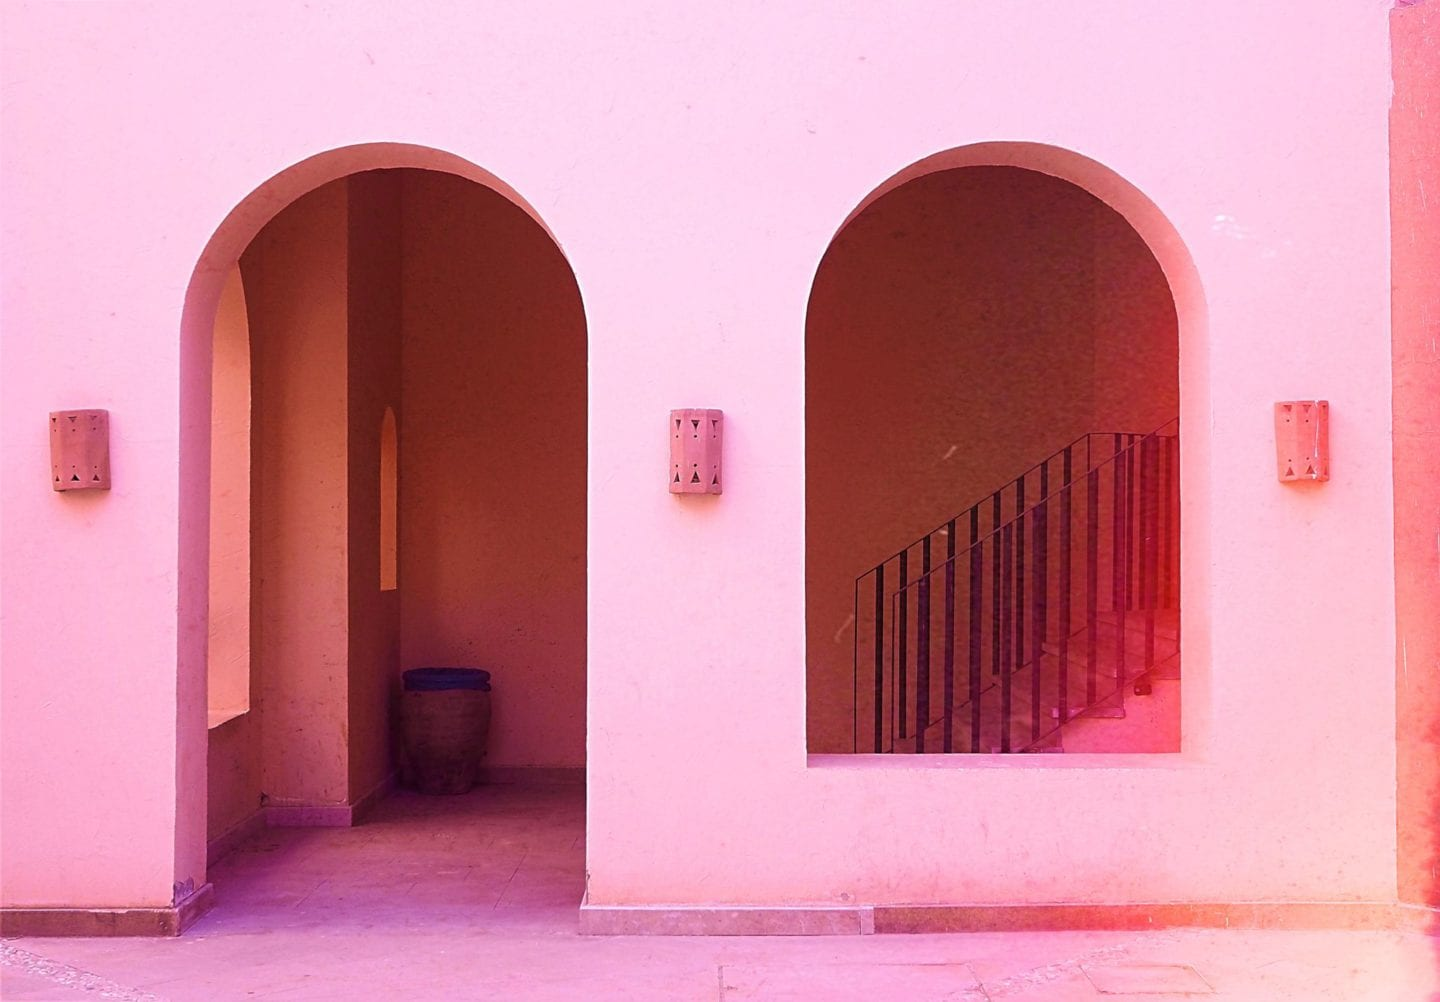 pink-door-ways-egypt-soma-bay